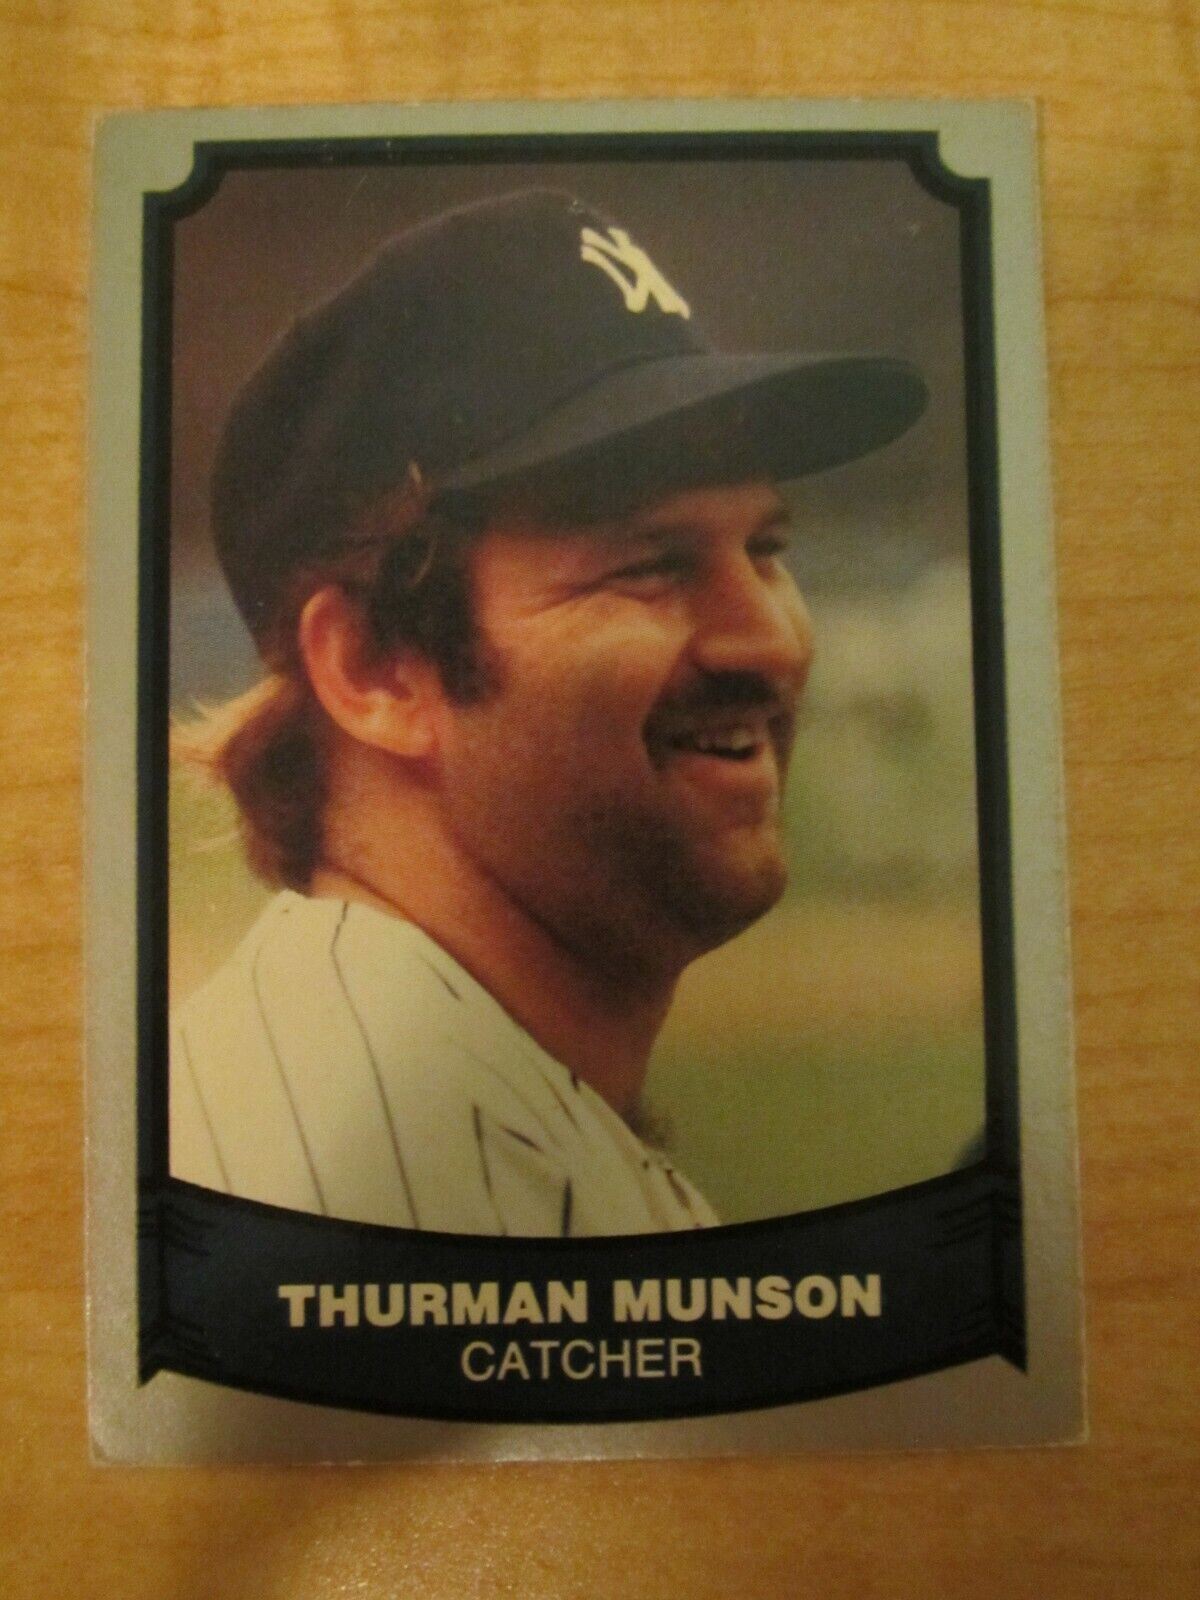 1988 Pacific Trading Thurman Munson 34 New York Yankees - $4.99